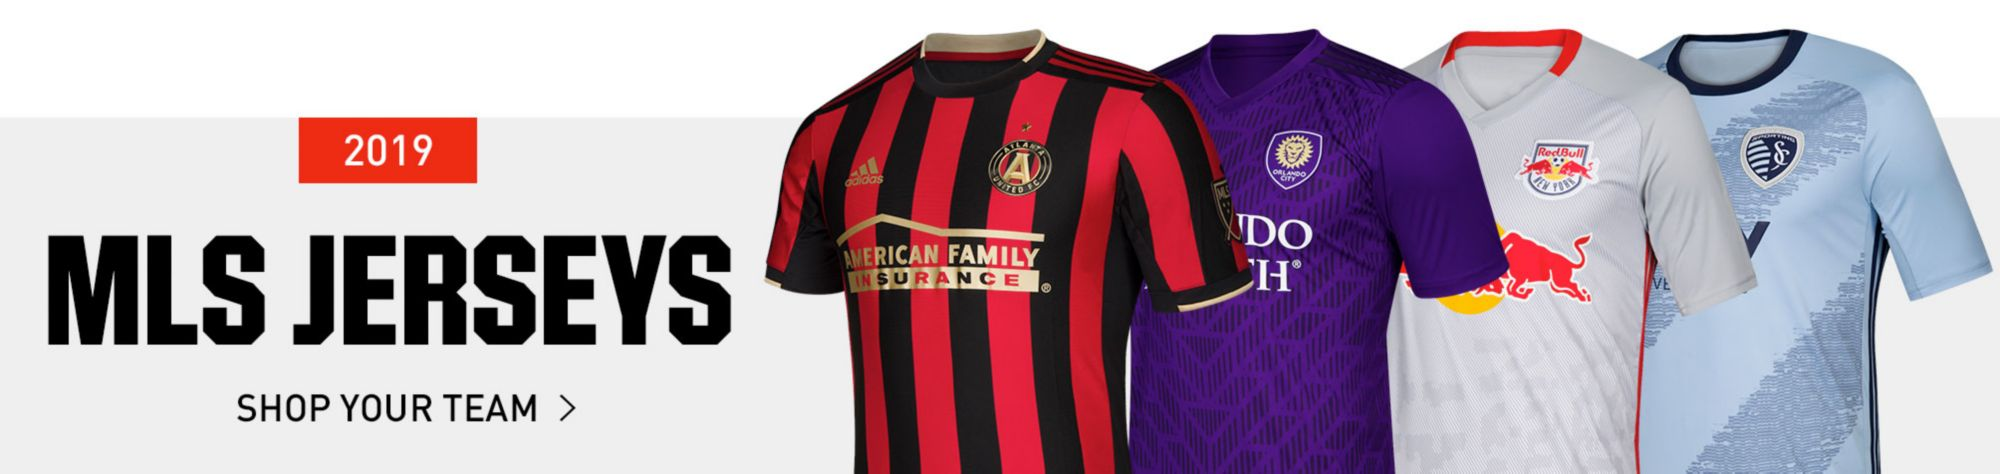 MLS Jerseys - Shop Your Team